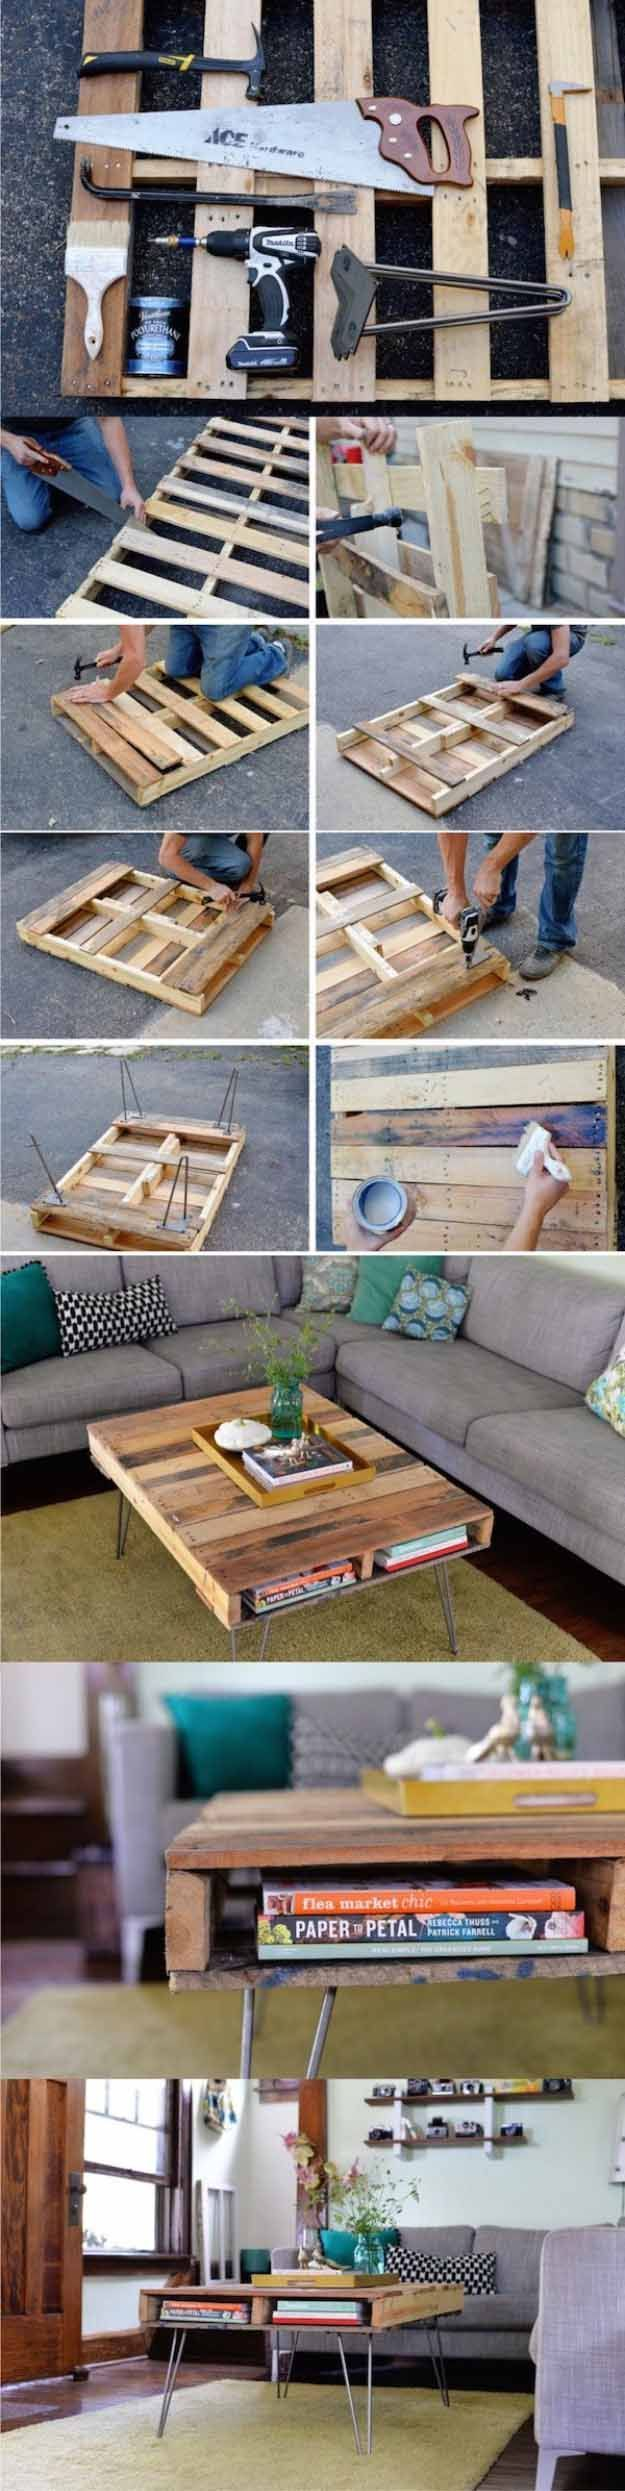 Best 25 Cheap furniture online ideas on Pinterest Cheap